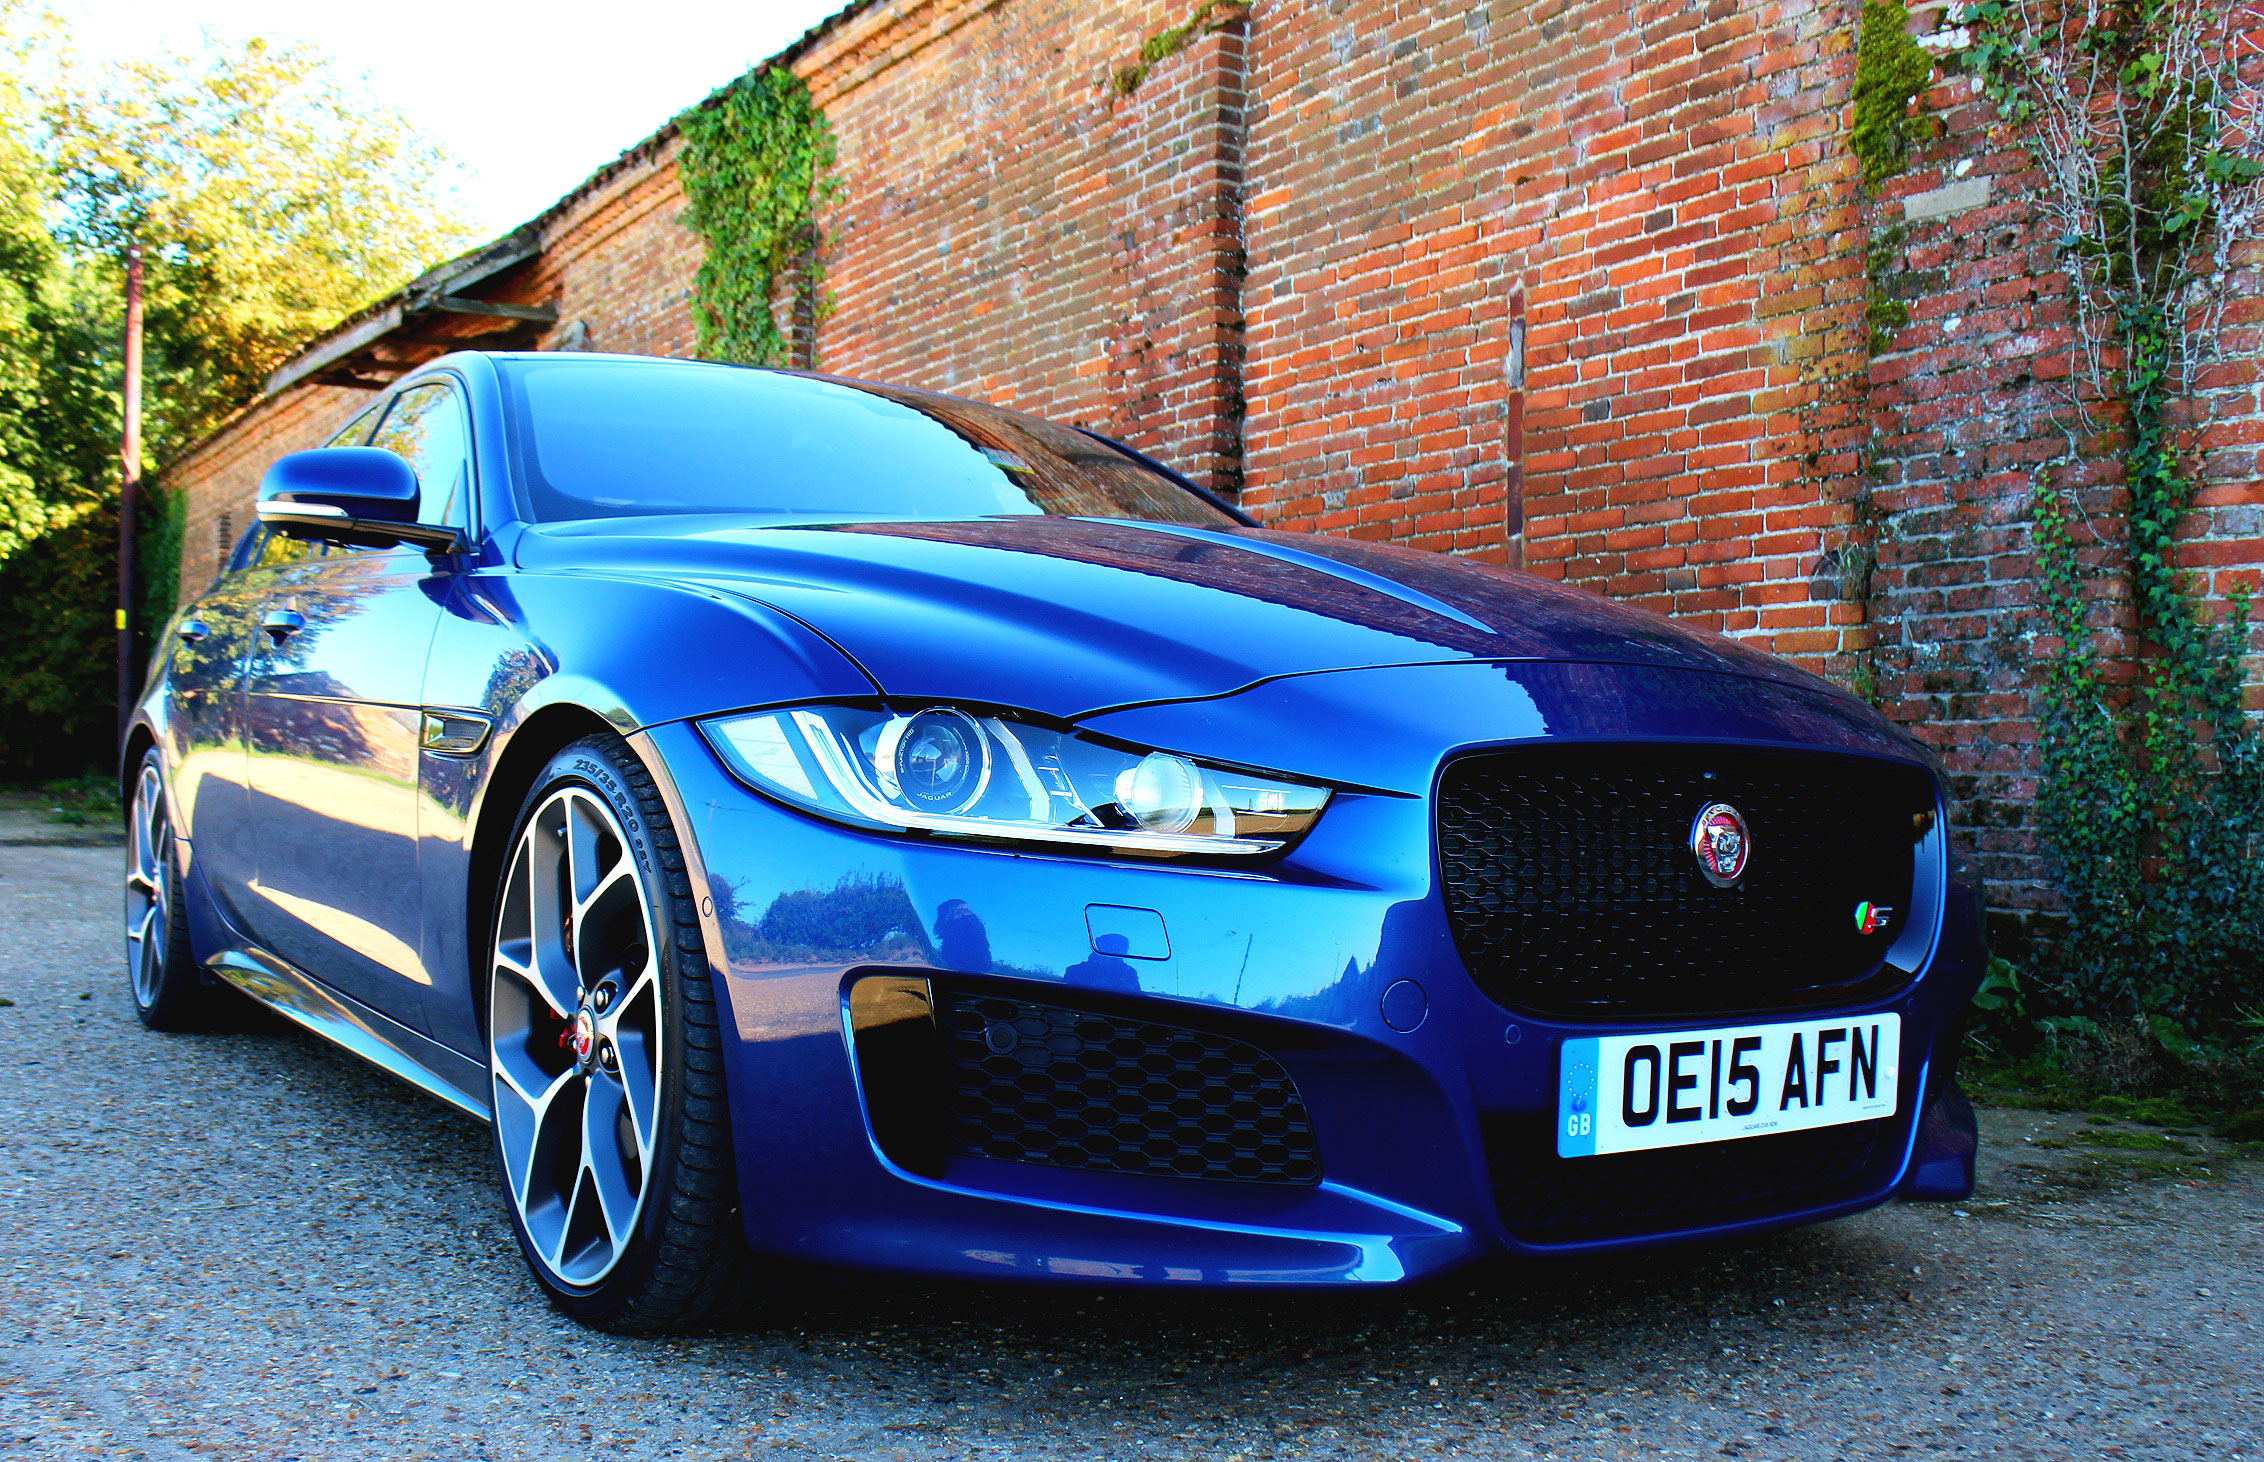 Simon Wittenberg, puts the Jaguar XE S through its paces on the twisting country lanes of North Norfolk